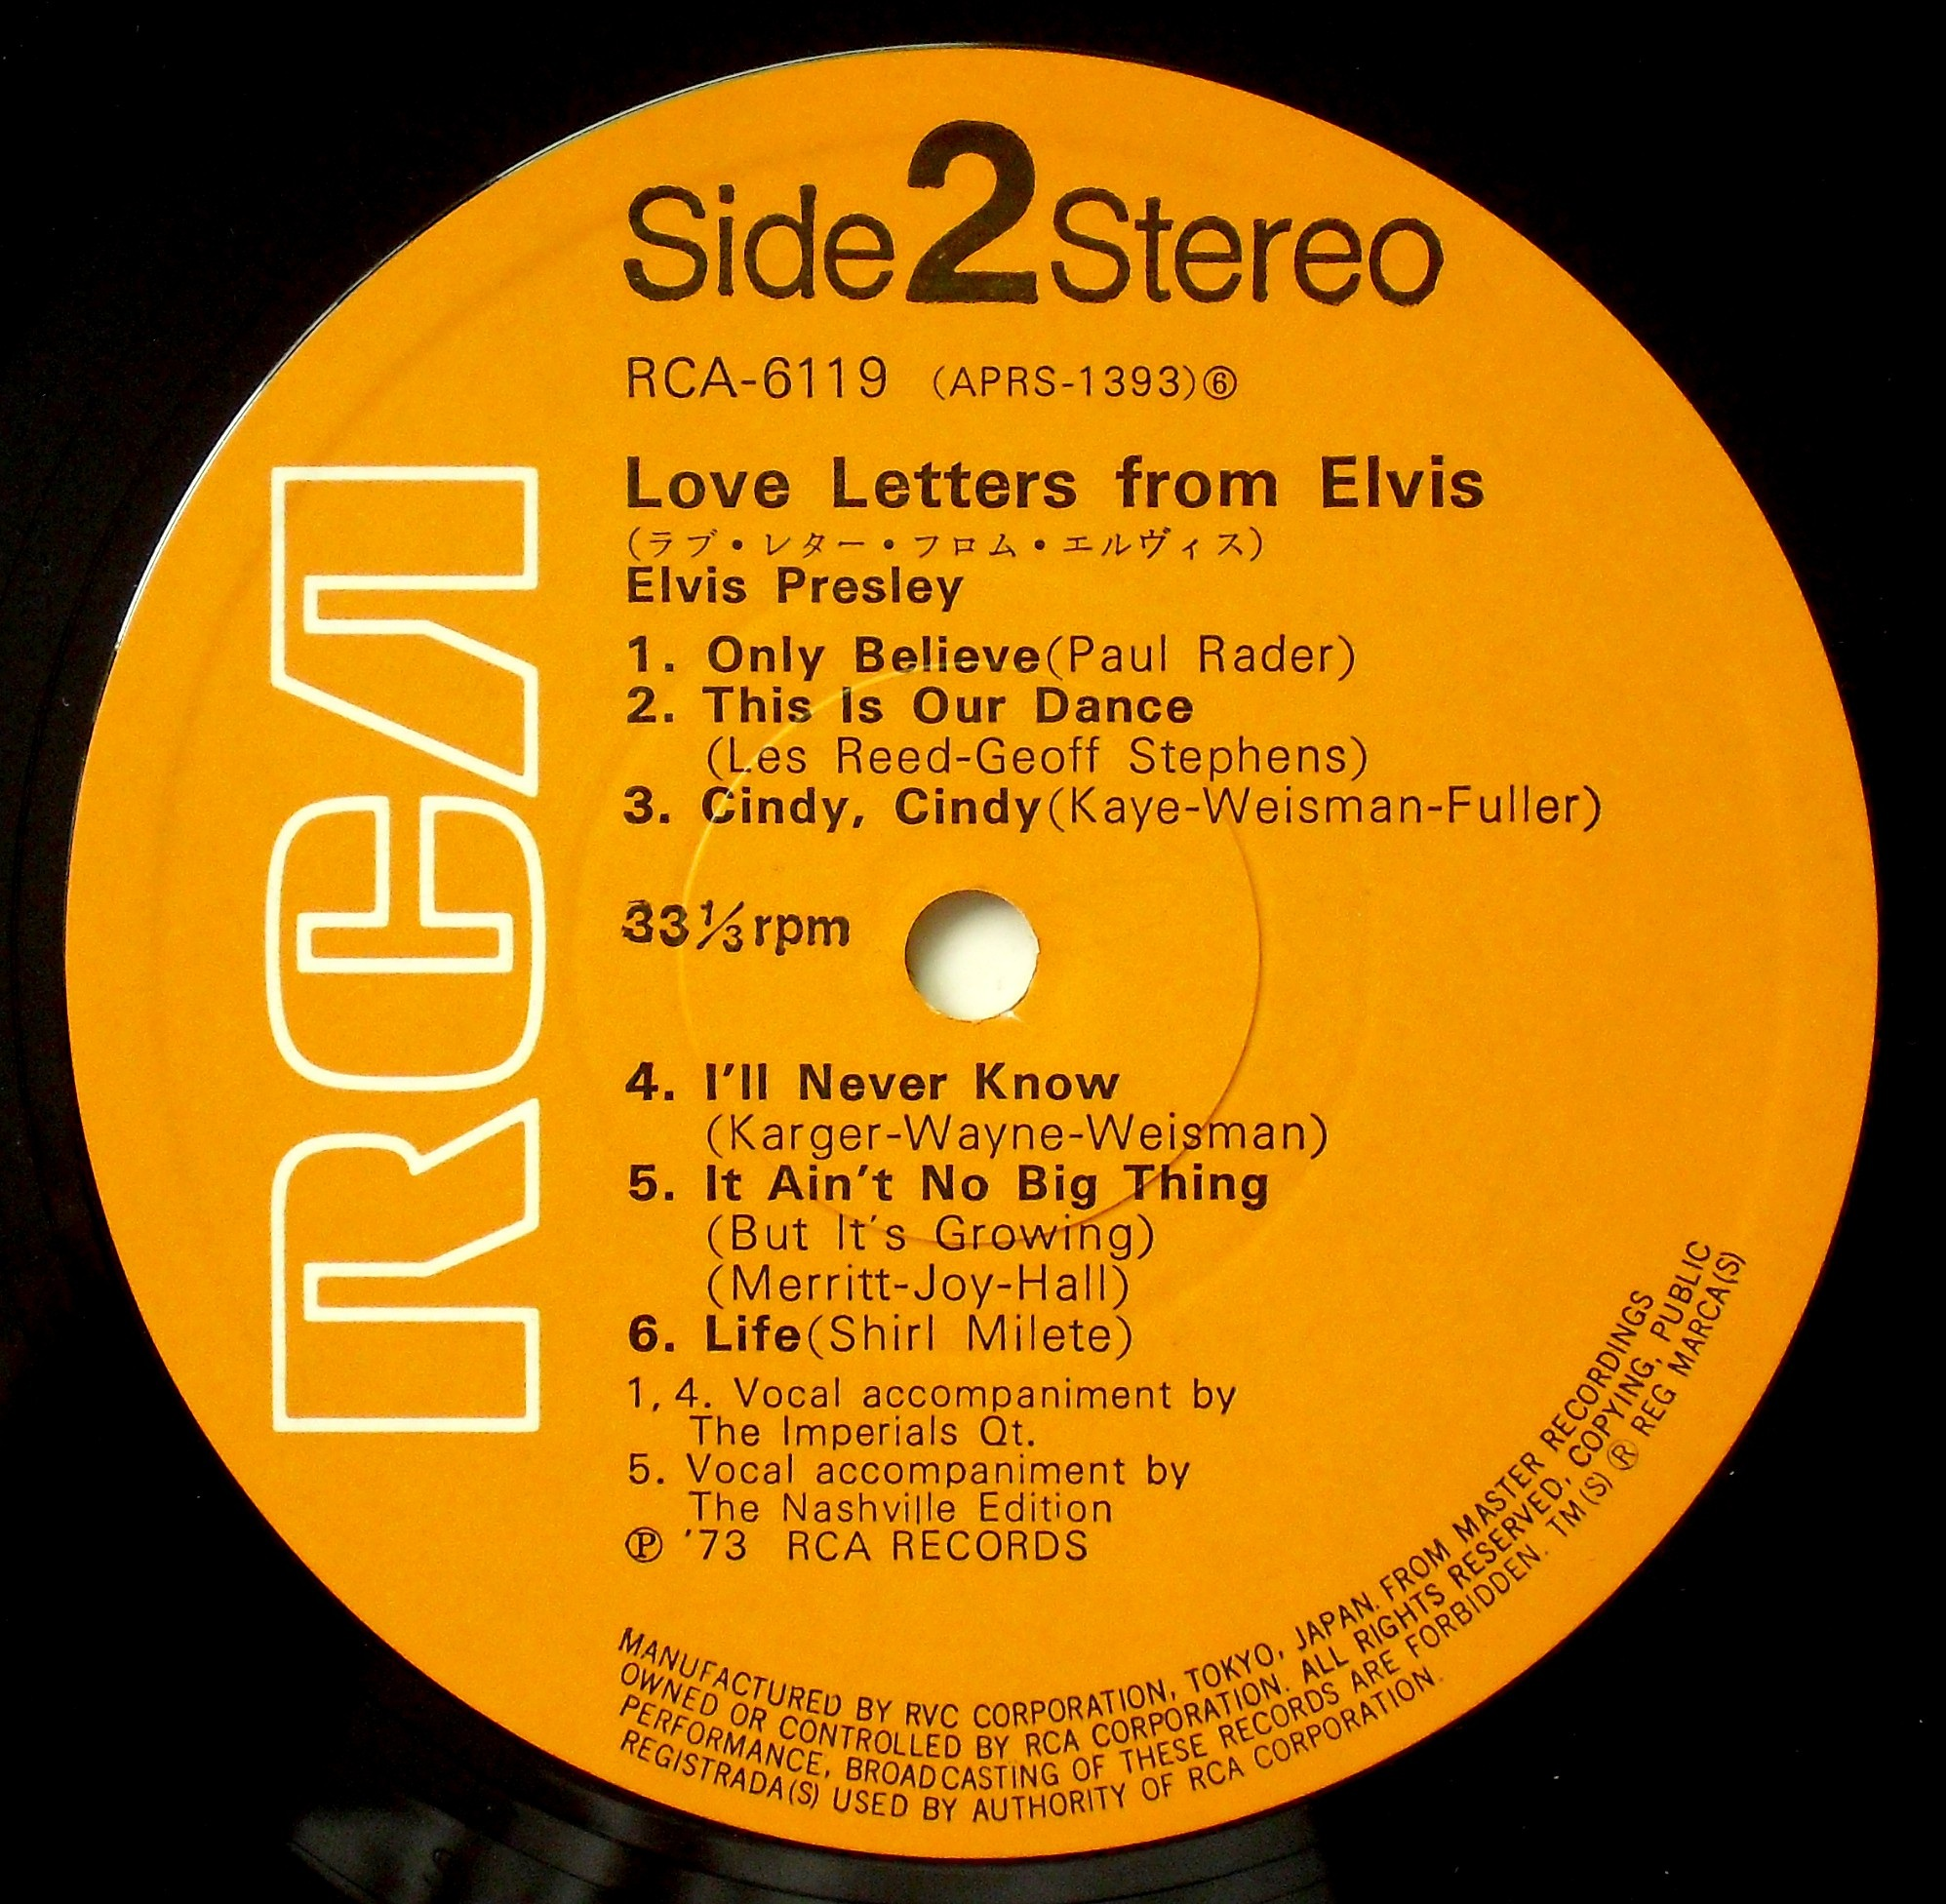 LOVE LETTERS FROM ELVIS 03s2vmc9o